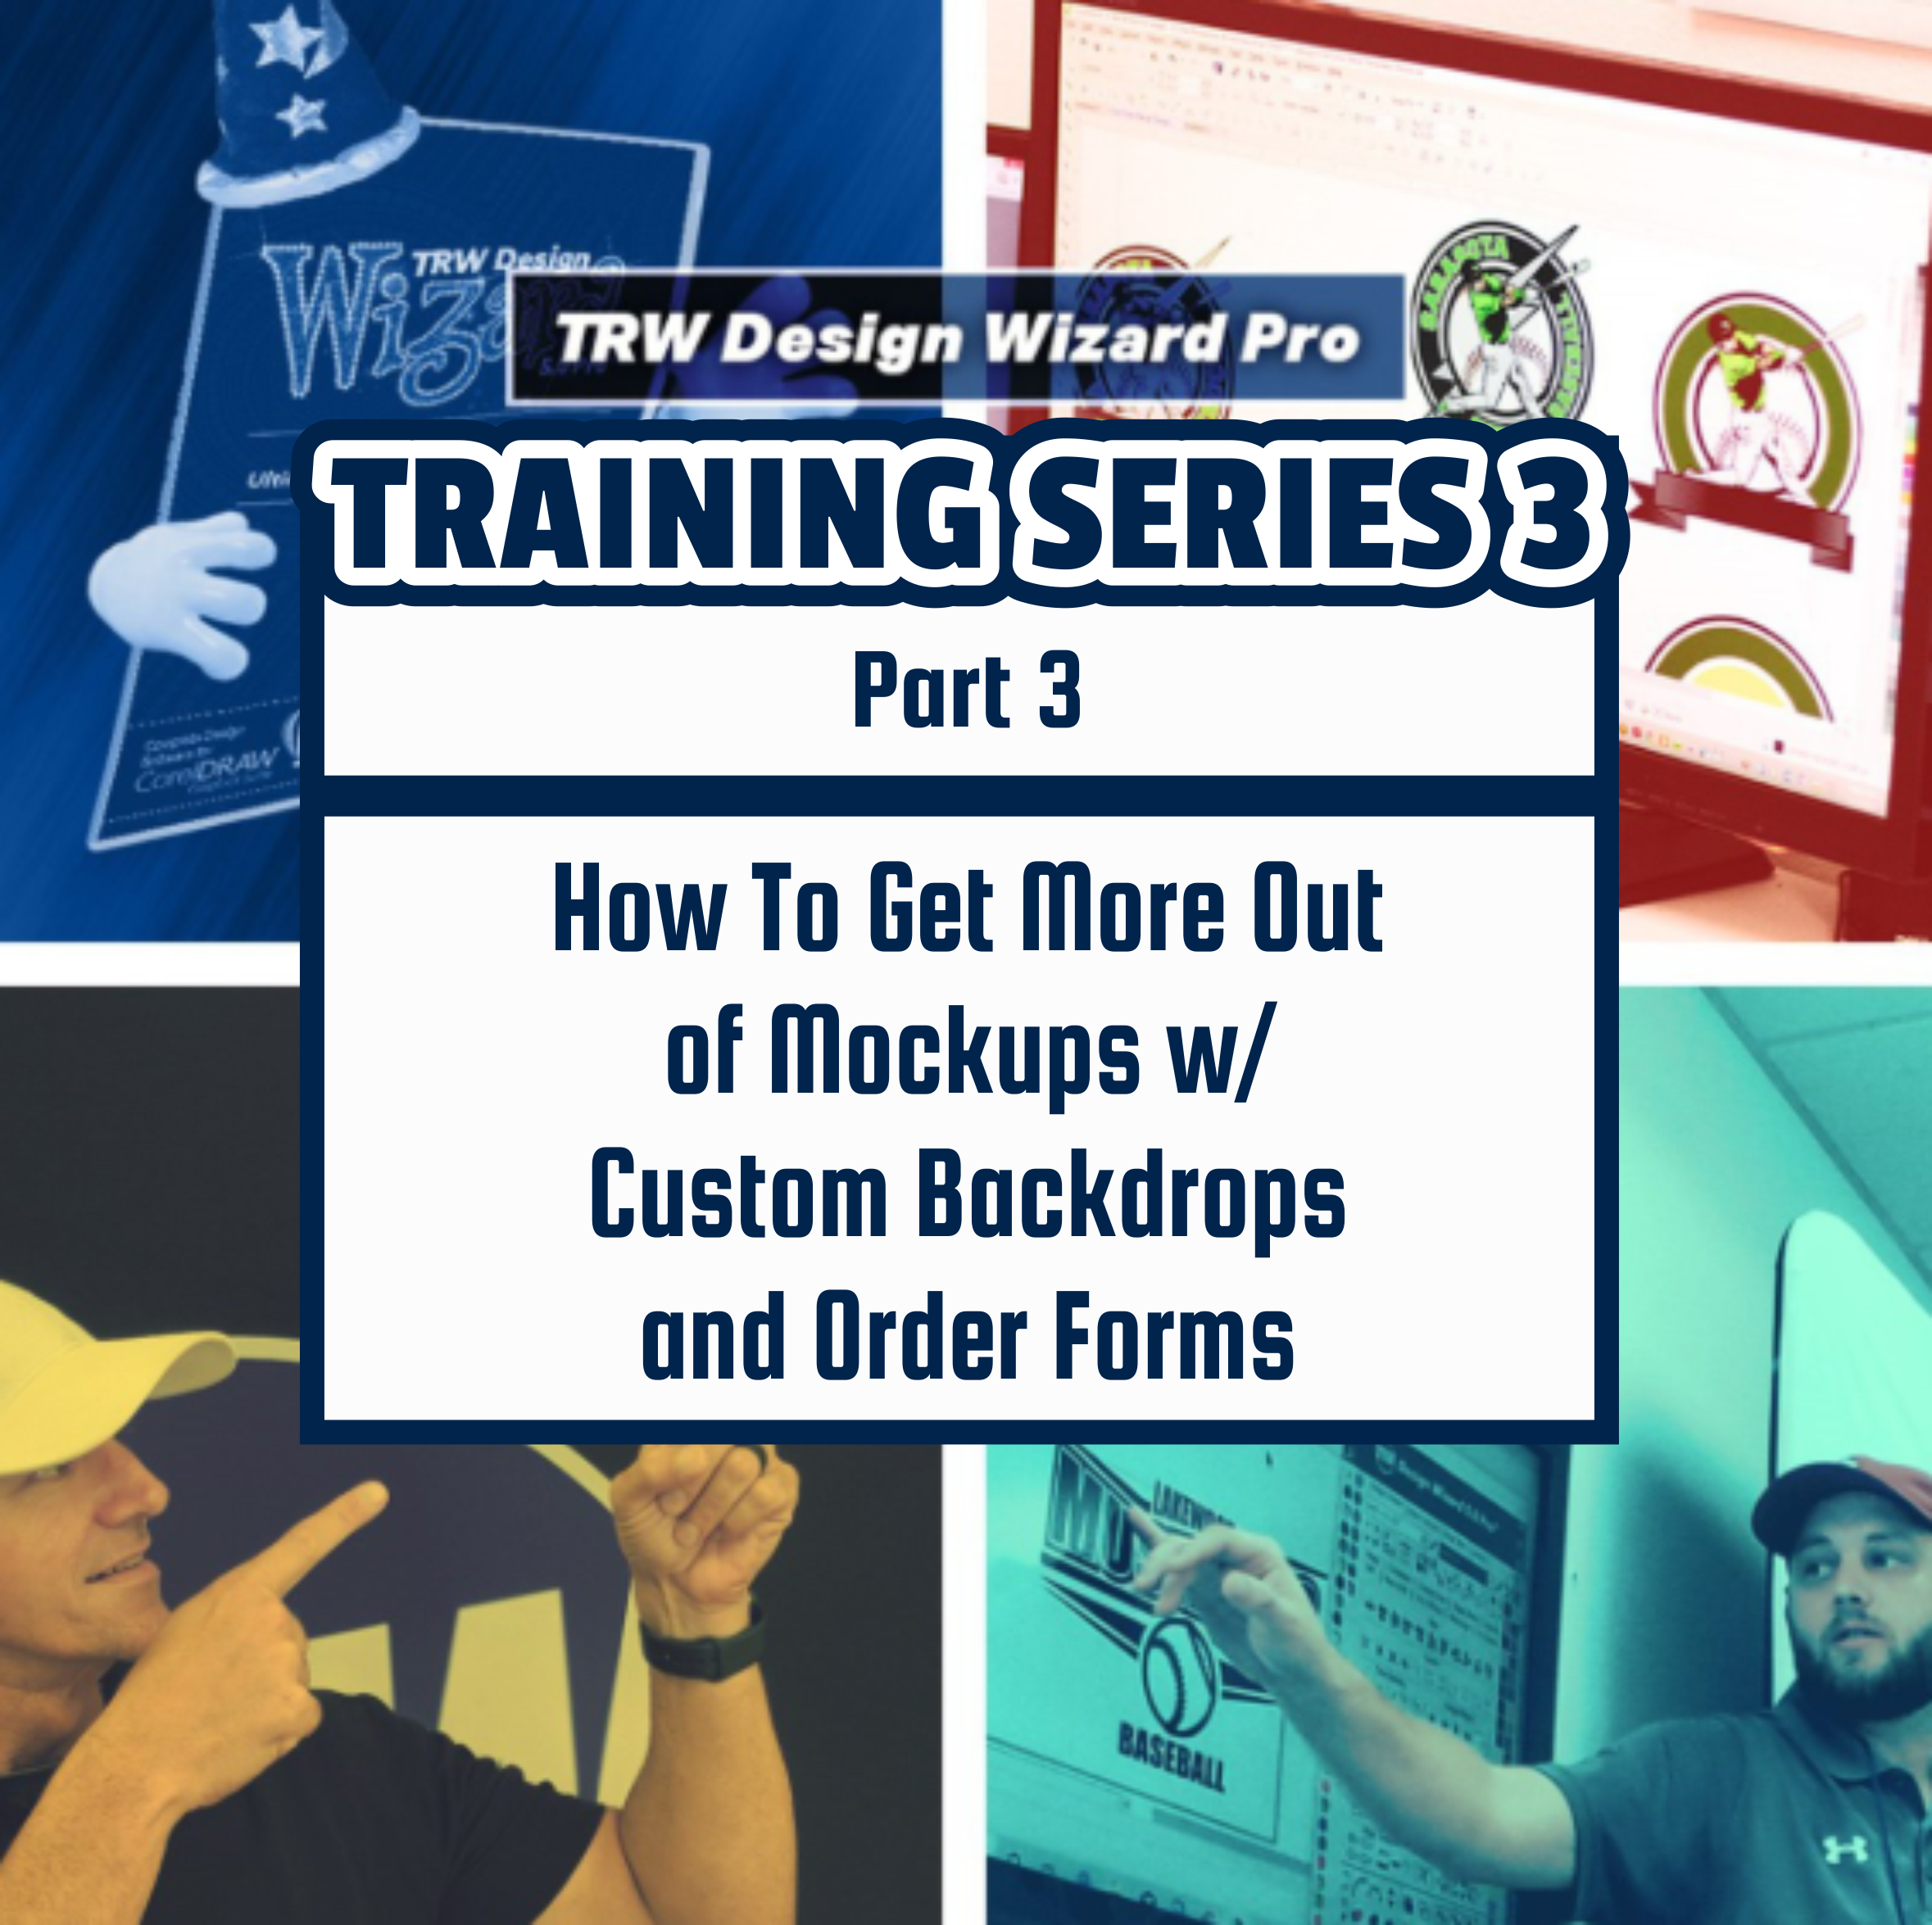 TRW Design Wizard Training Series 3 | Part Three: How To Get More Out of Mockups w/ Custom Backdrops and Order Forms| March April 8th 6pm-8pmET